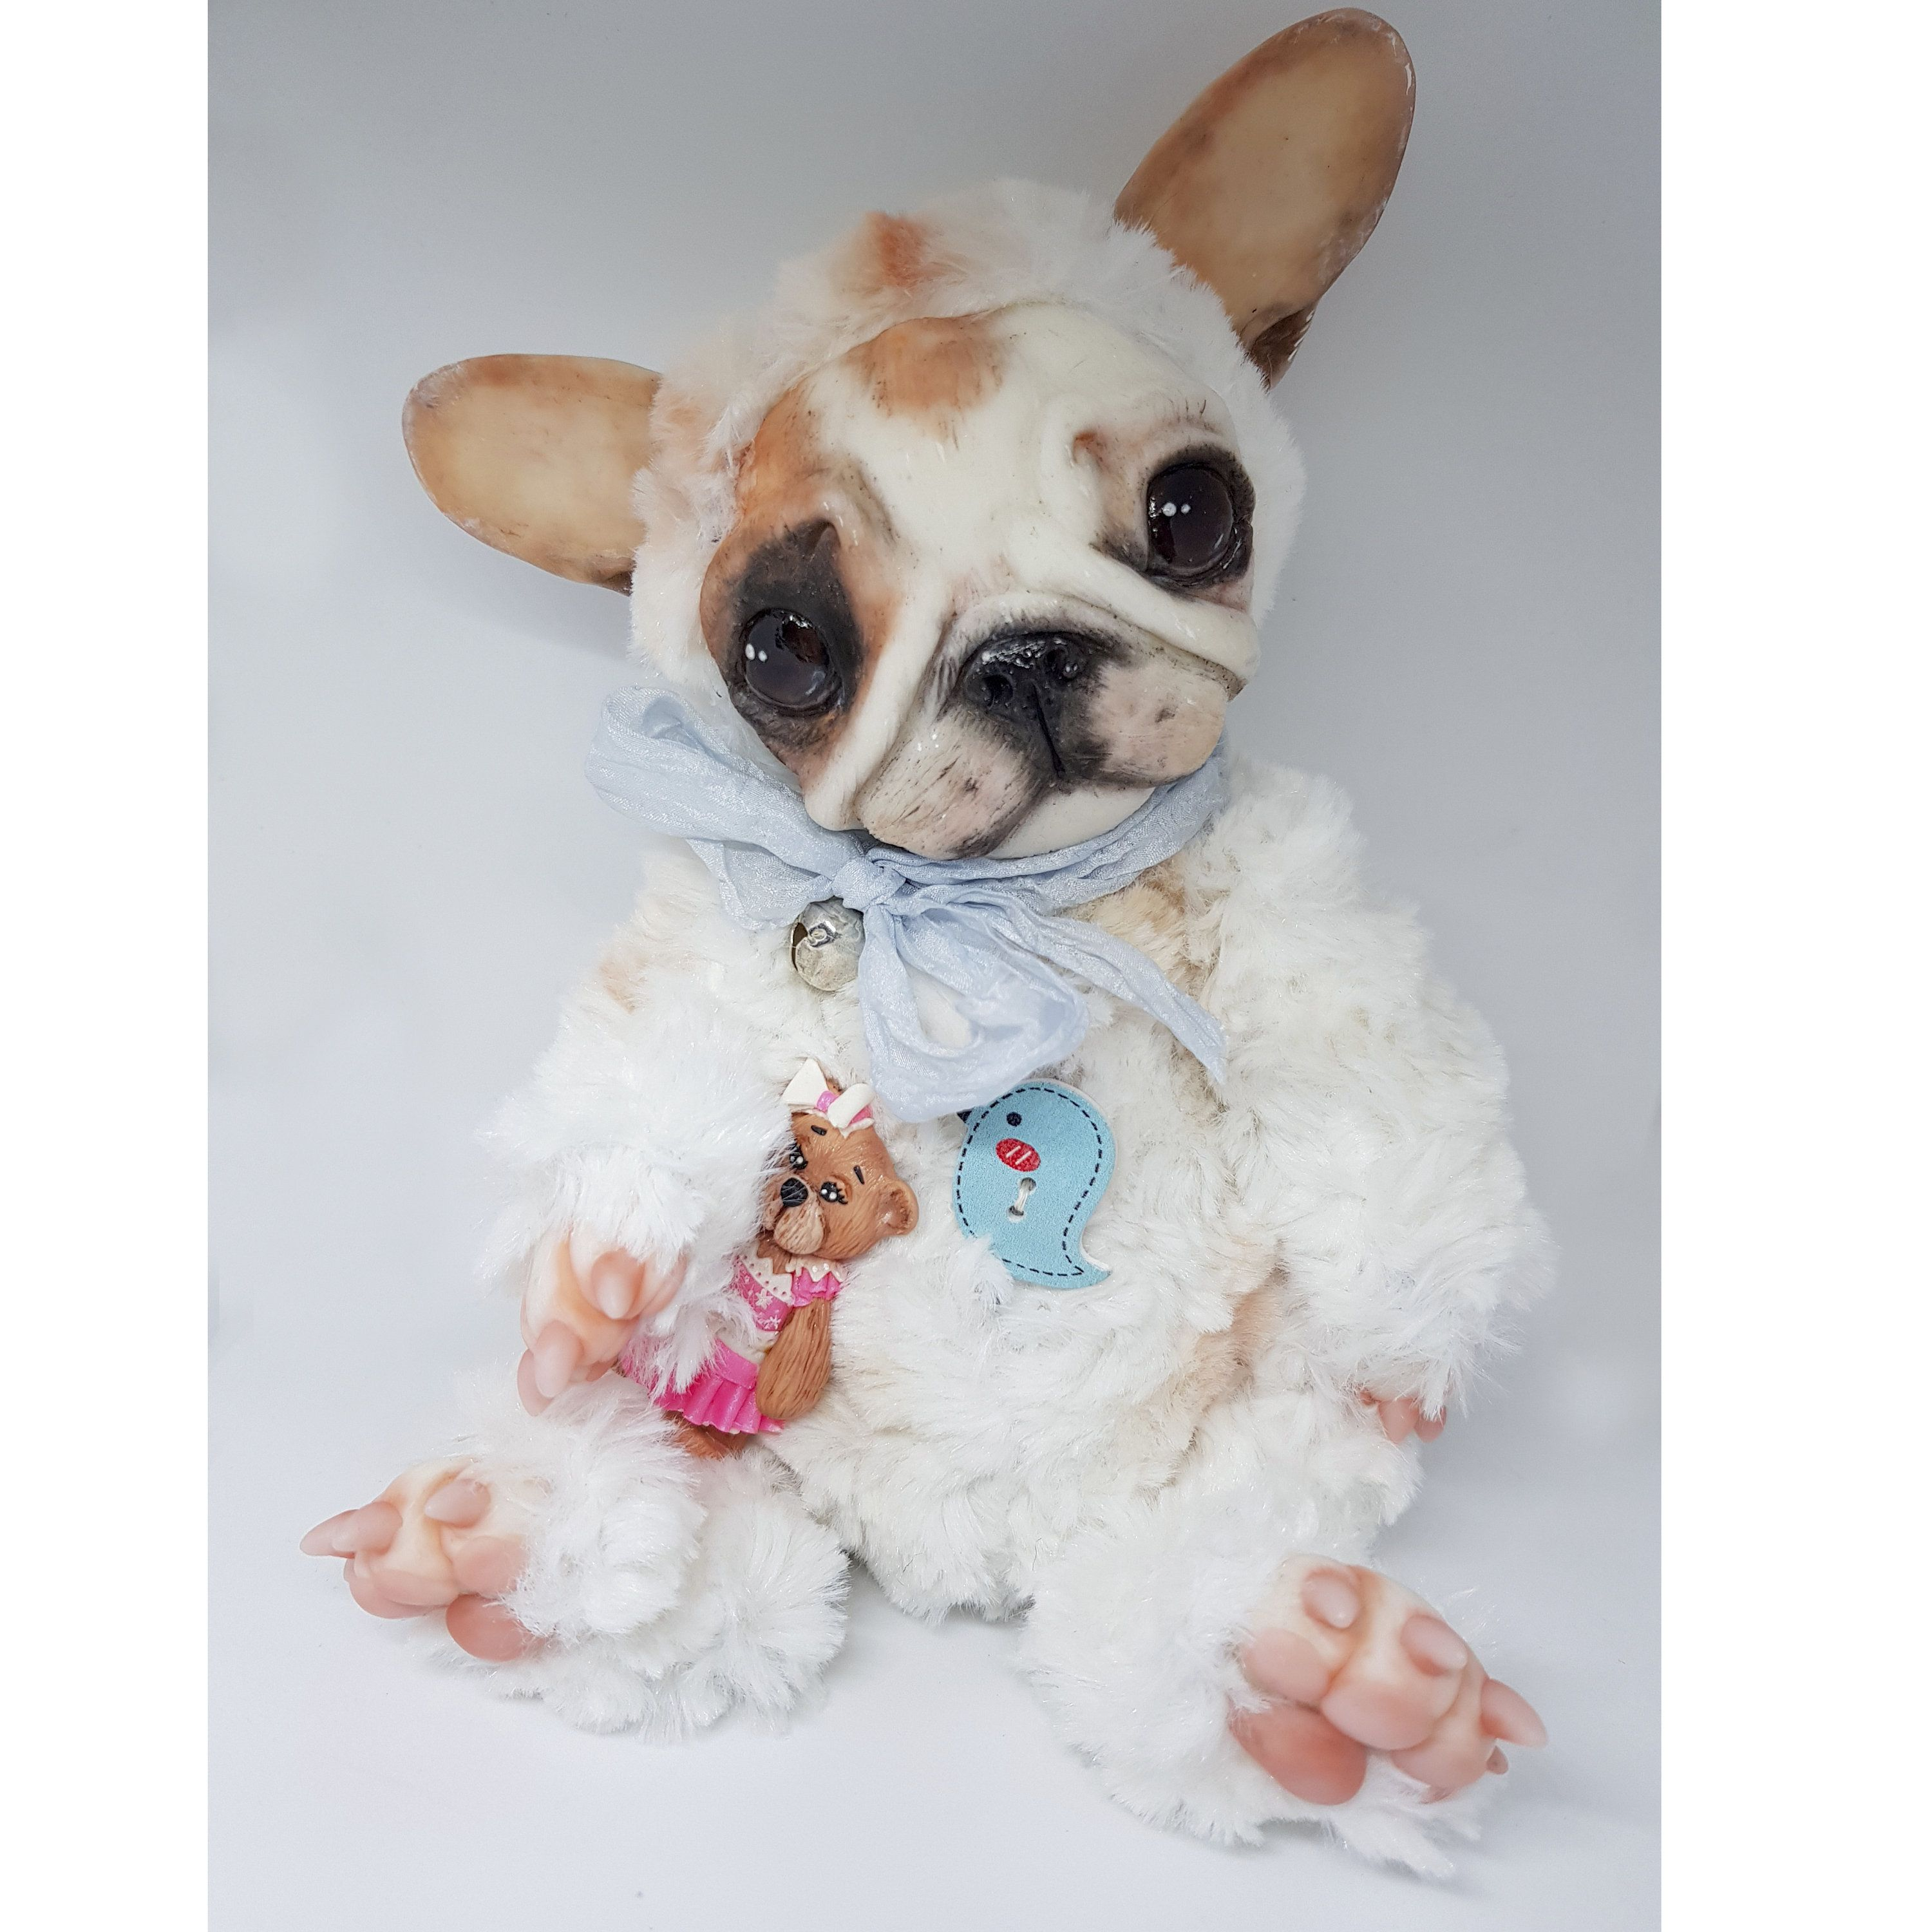 French Bulldog Little Dog Sweet Animal Funny Toy Cute And